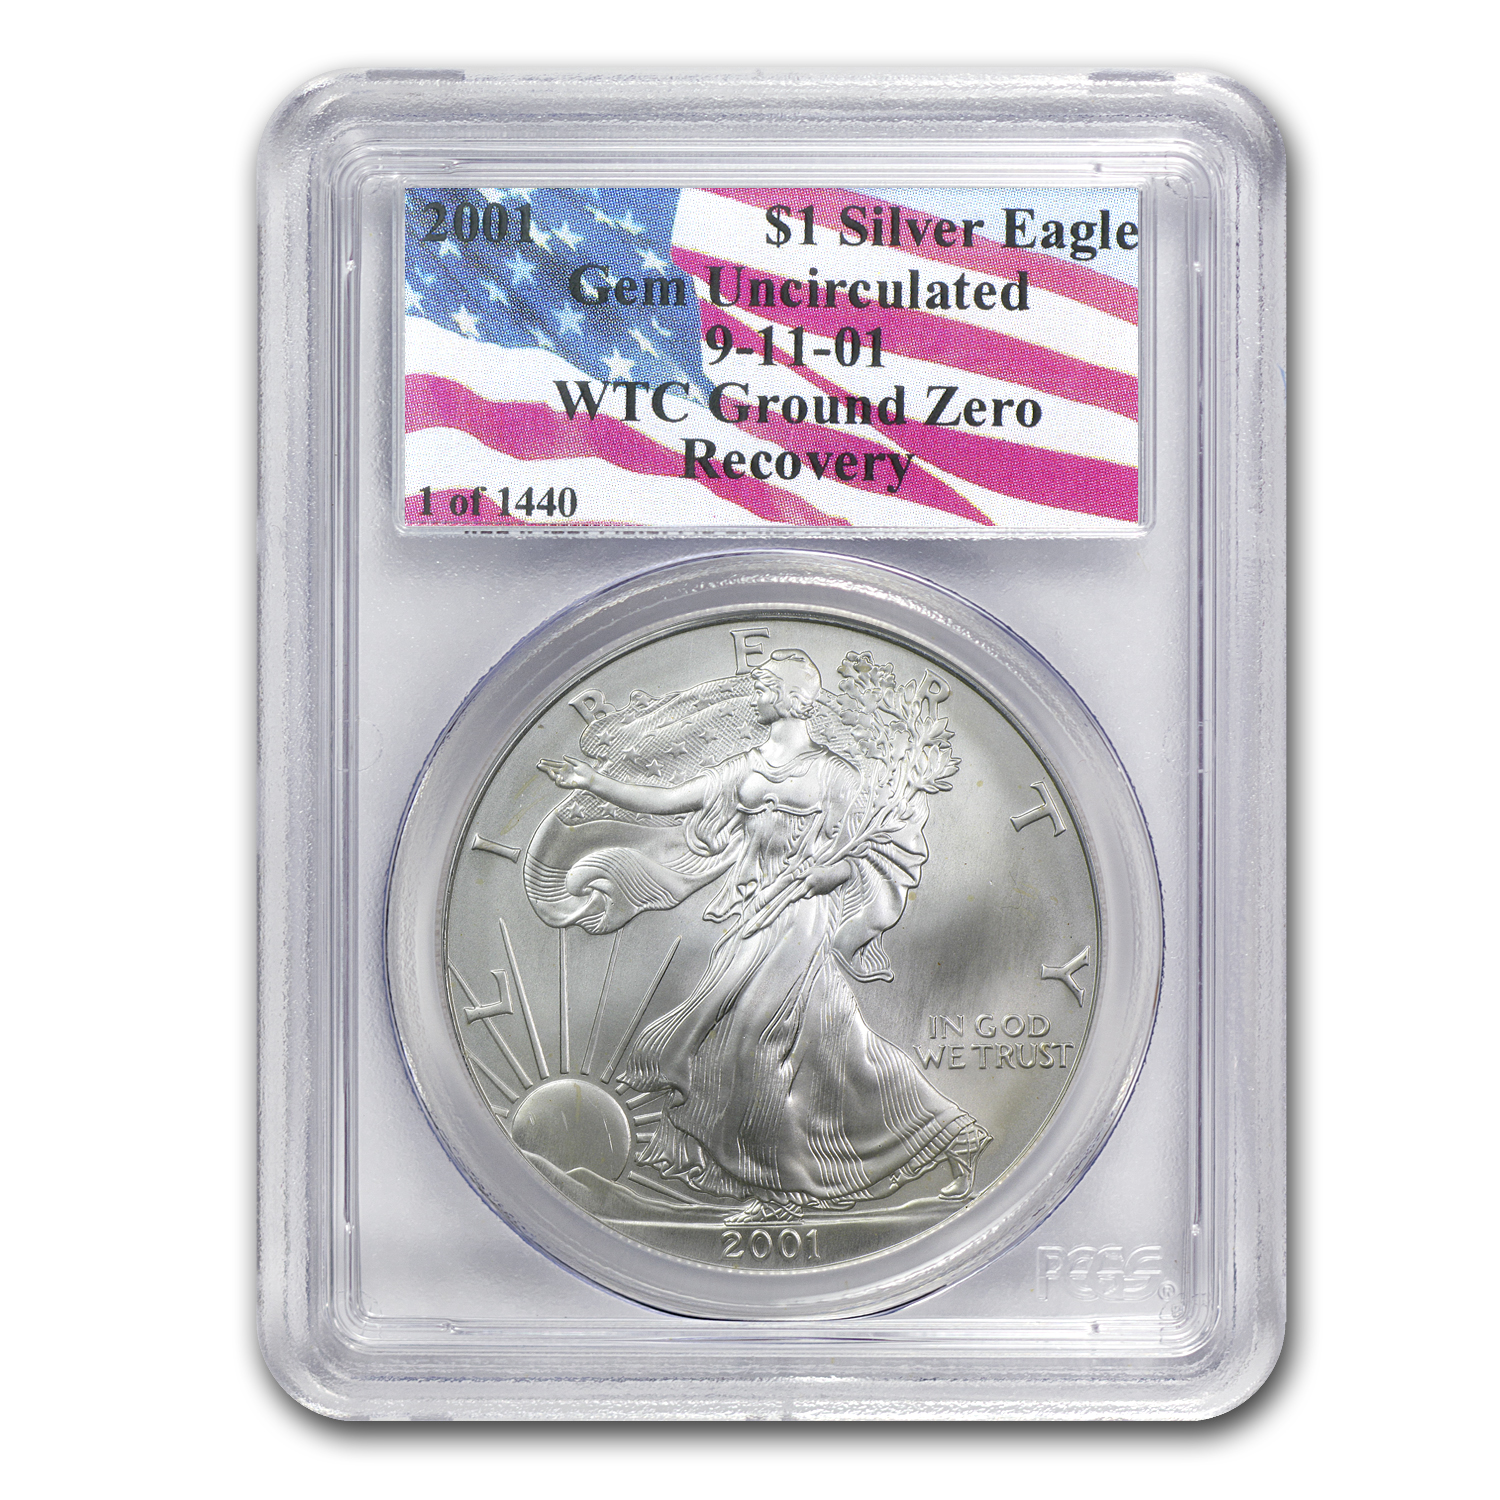 2001 Silver American Eagle Gem BU PCGS (1 of 1440, WTC)